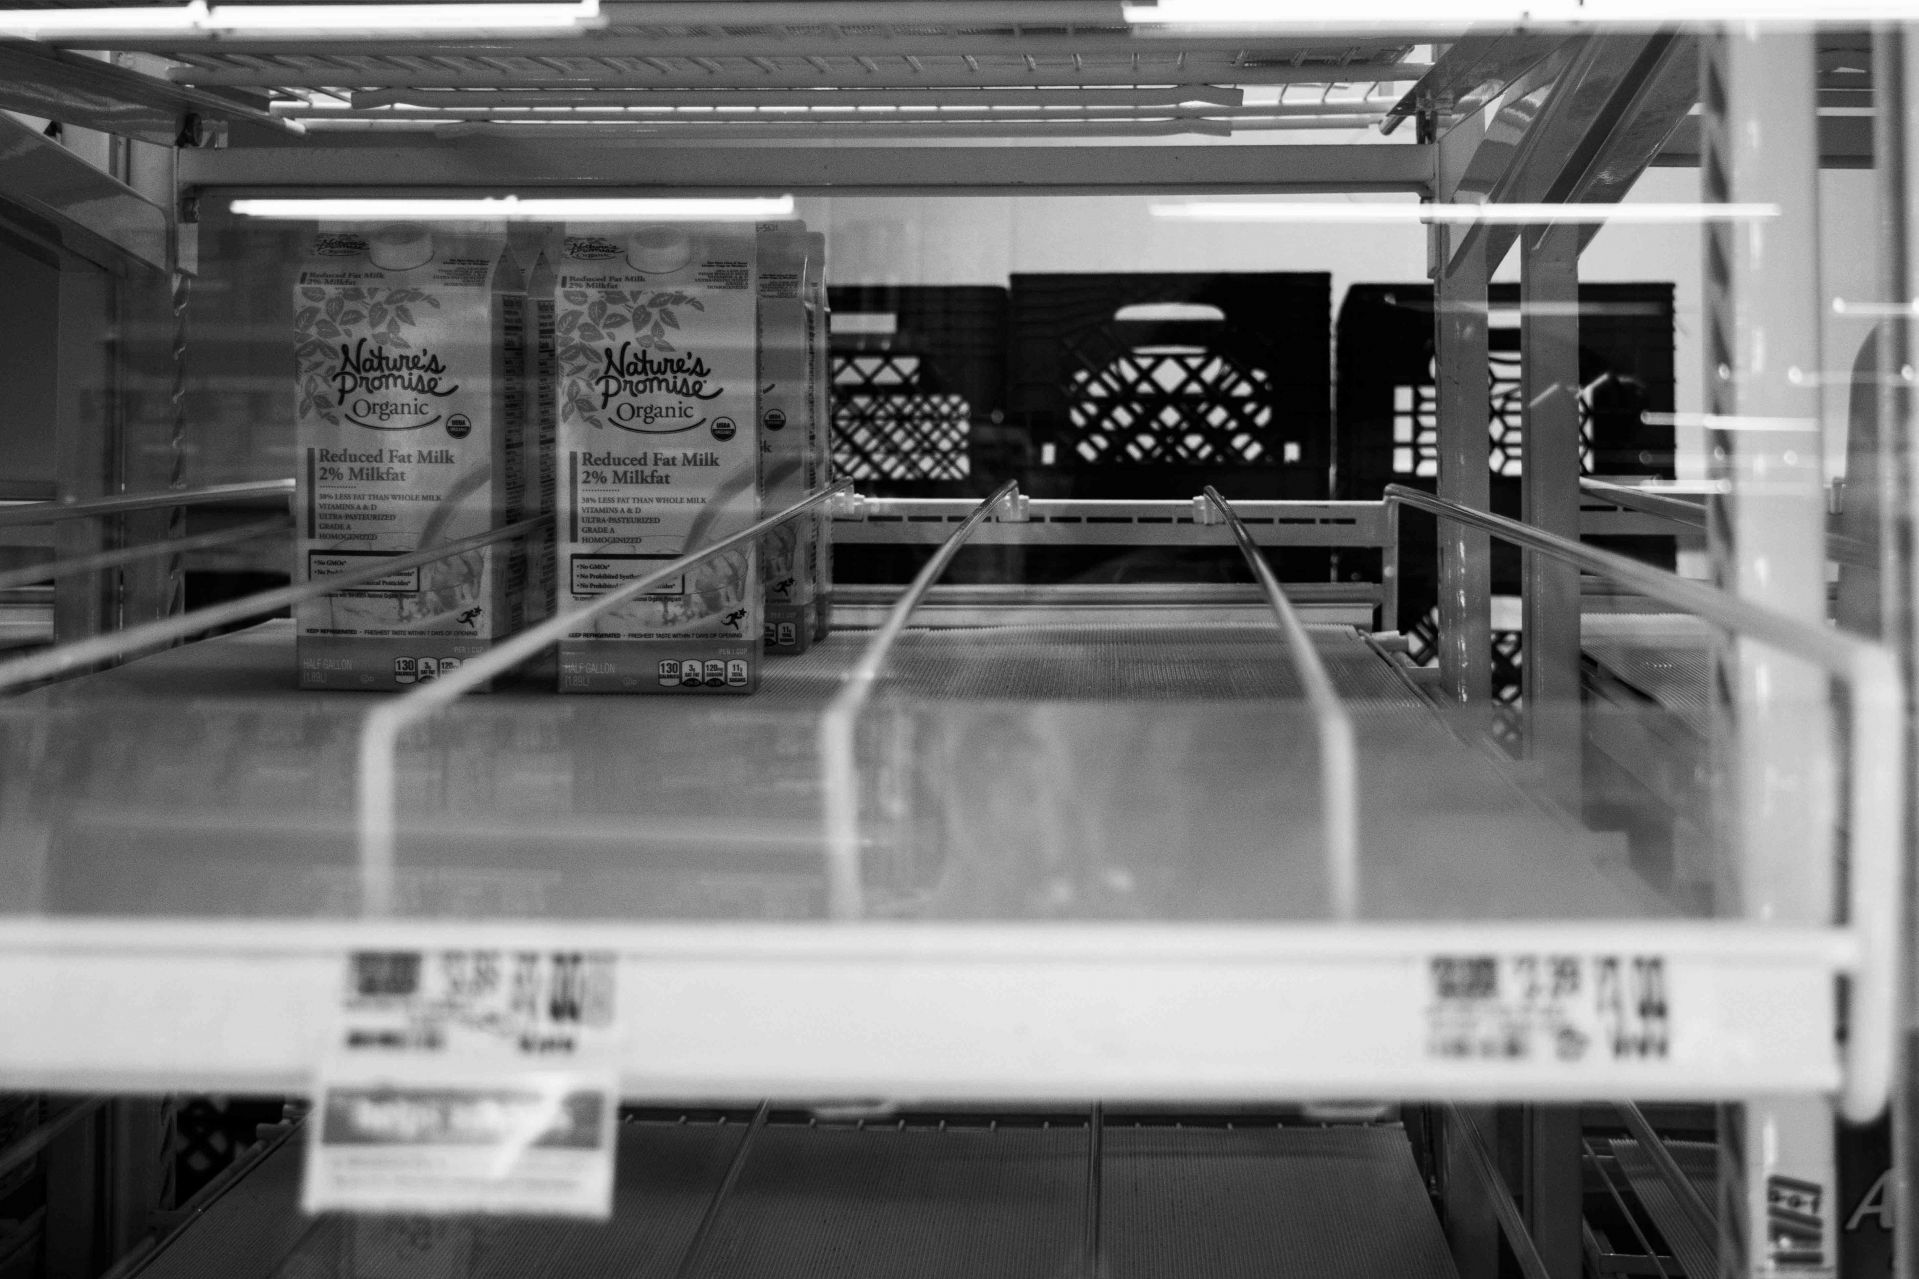 Cartons of milk run low in the dairy section of a Hannaford supermarket in Yarmouth, Maine, on April 11, 2020. (Photograph by Jenna Beagle '22)